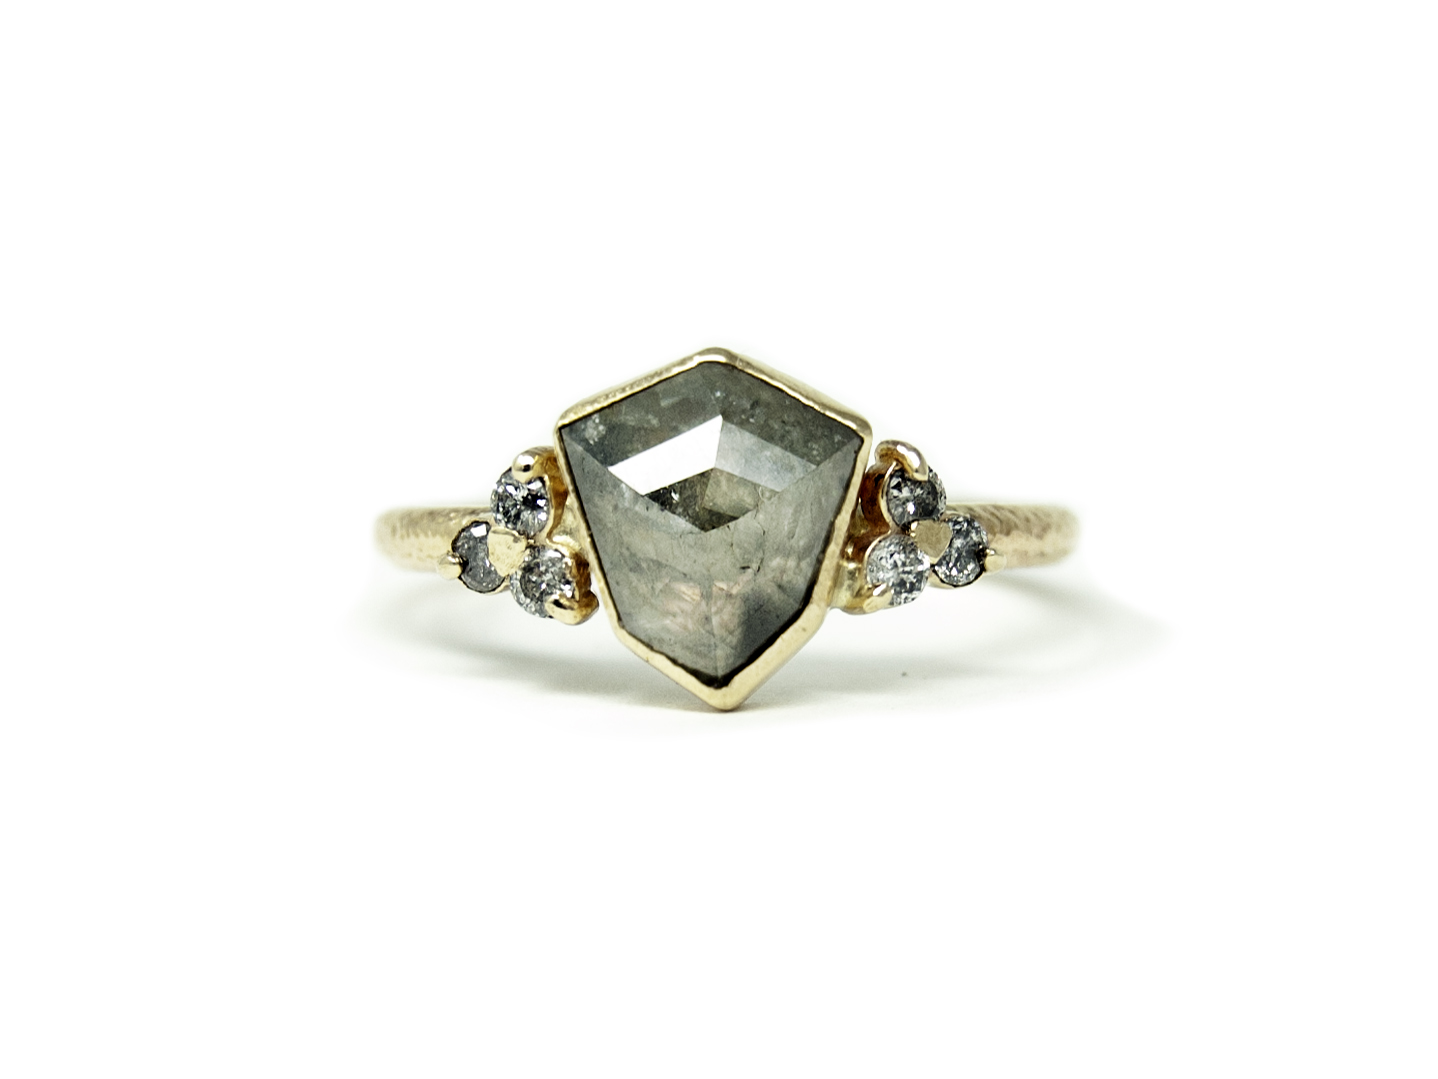 Love the unique shield shaped diamond in this engagement ring.